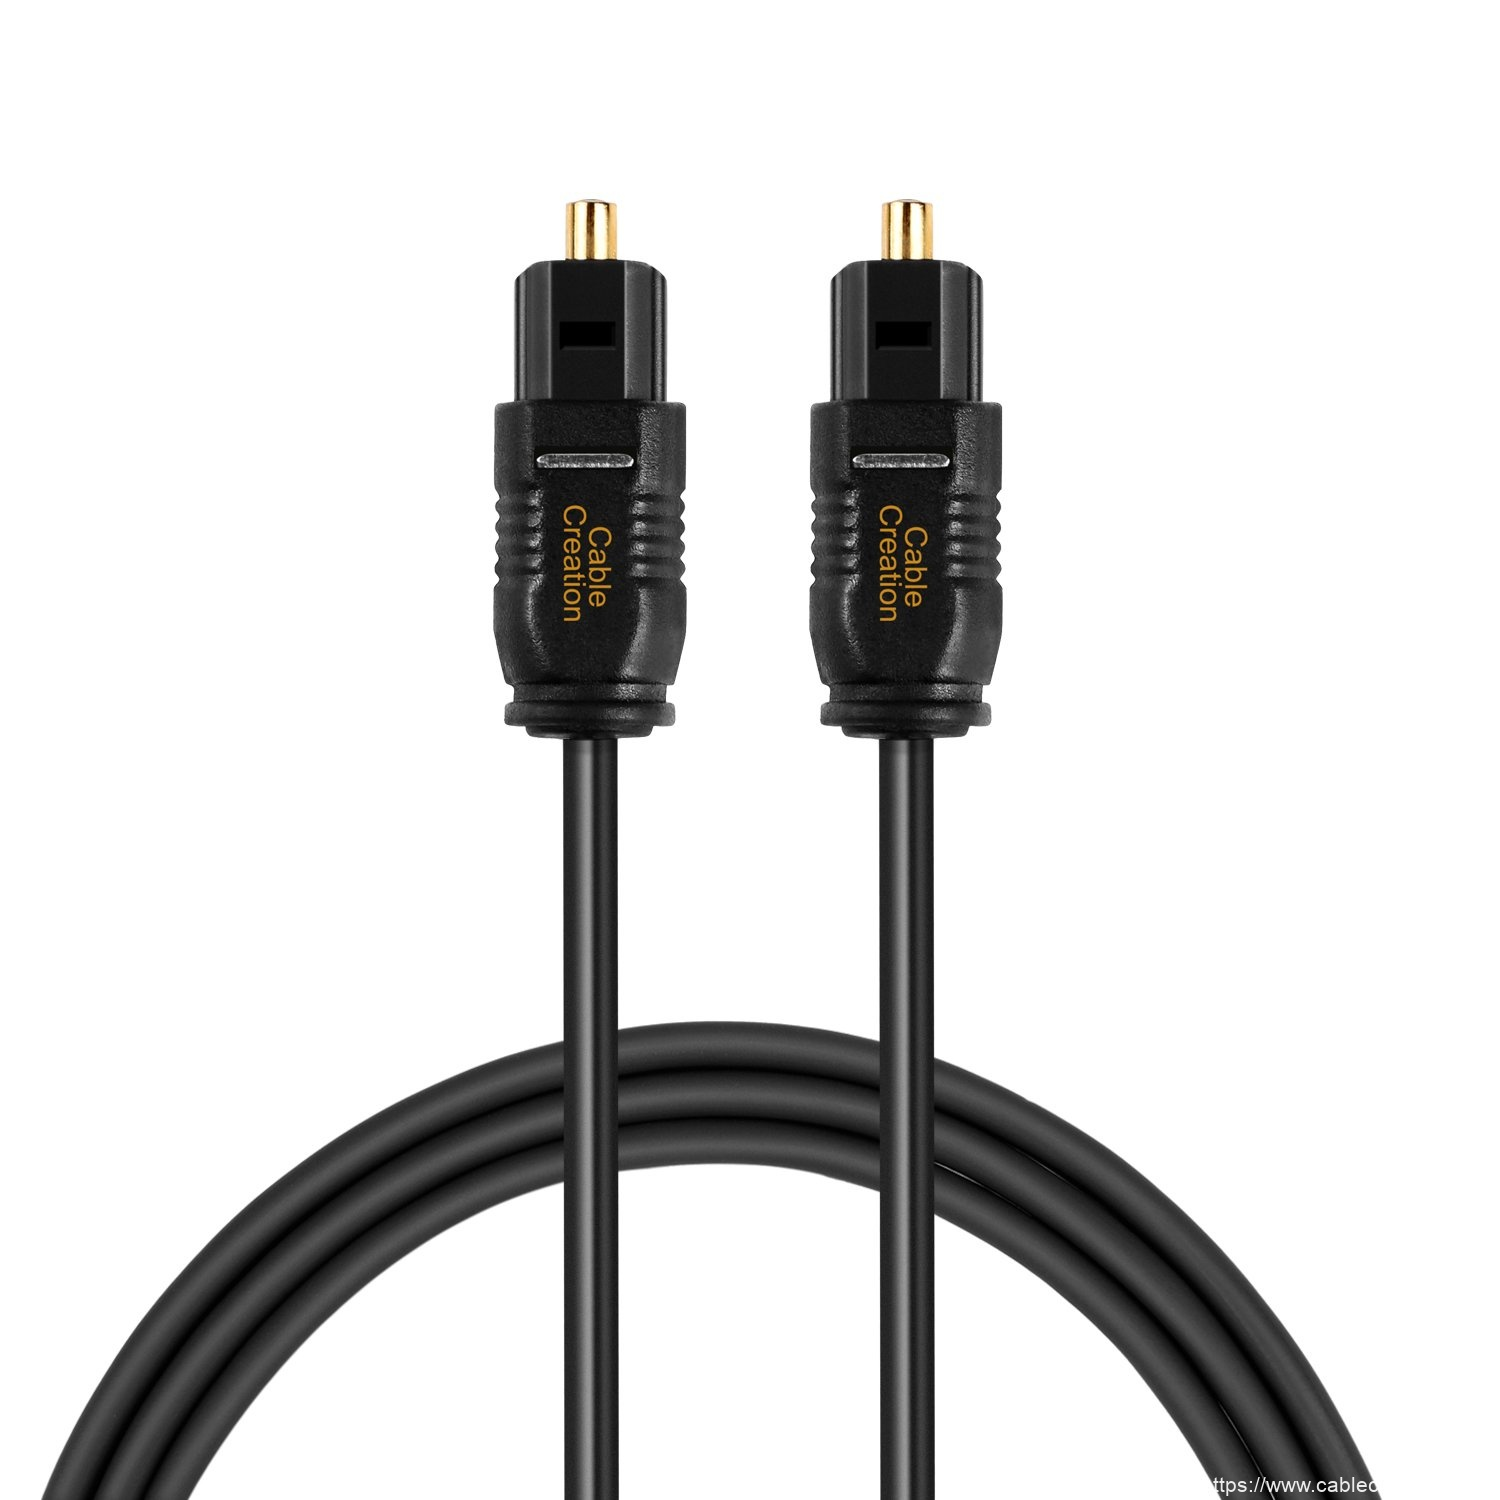 China Manufacturer for 3.5mm To 2rca Audio Auxiliary Stereo - Optical Digital Audio Cable 3 Feet/0.9 Meter, #CF0023 – CableCreation